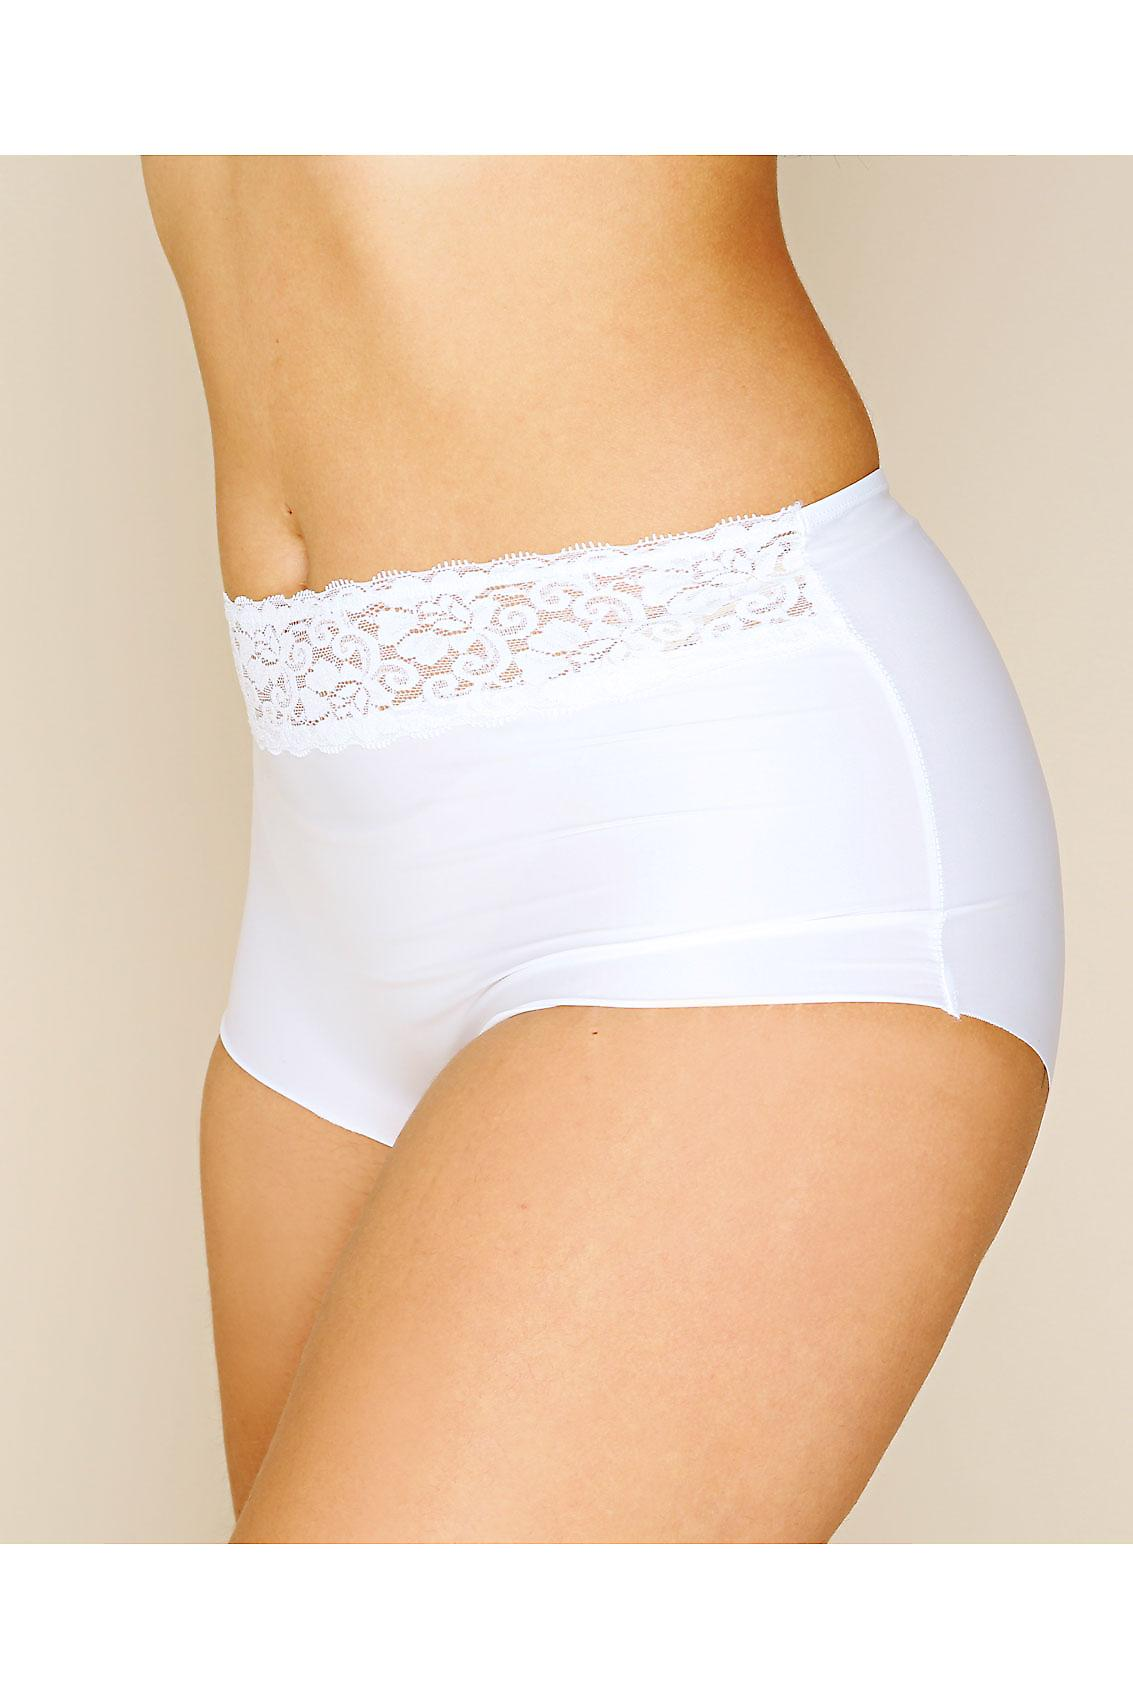 White No VPL Brief With Lace Waist Trim